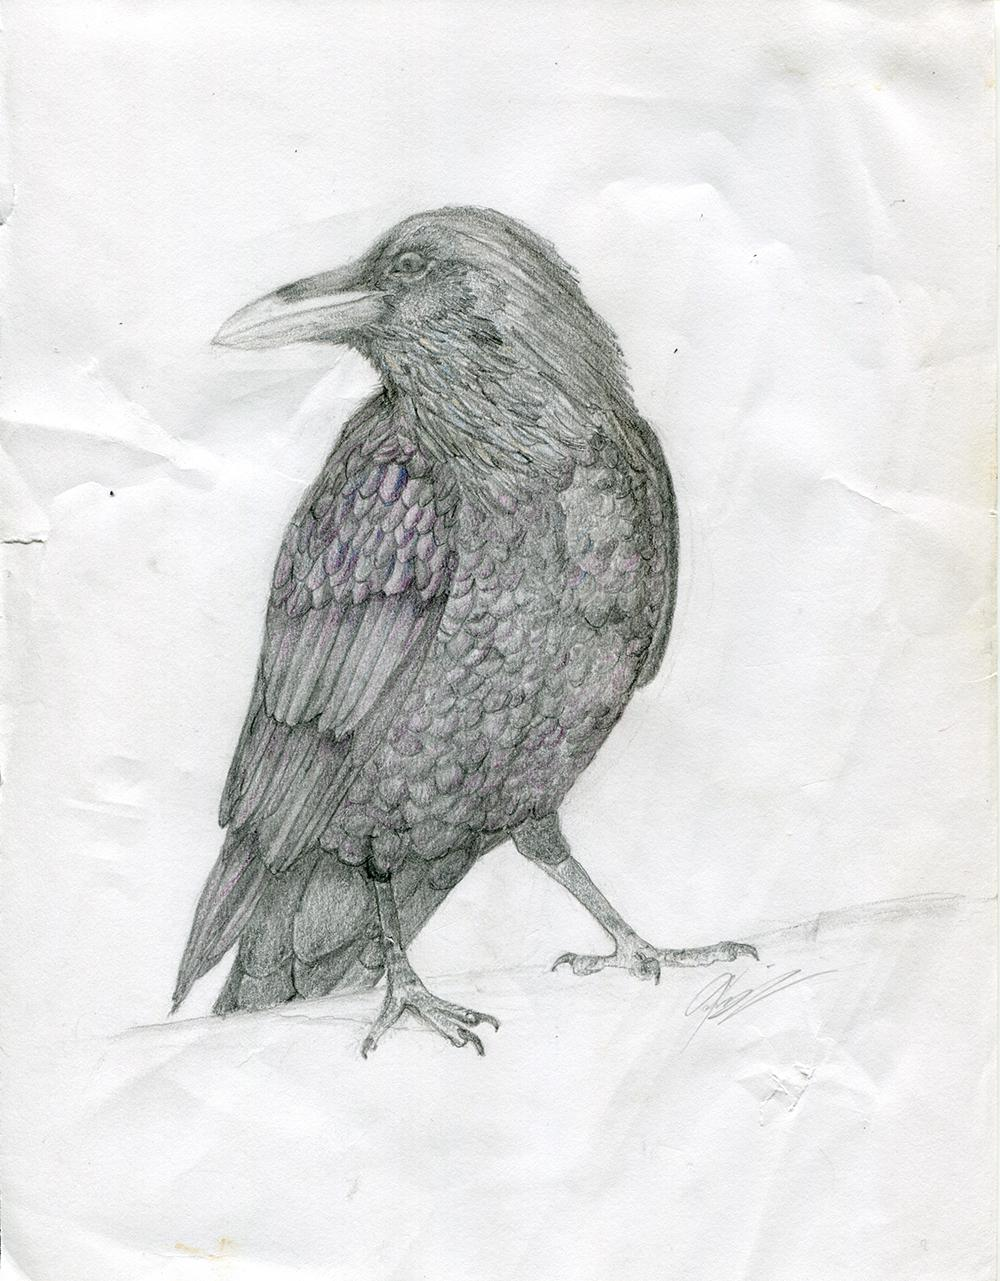 Drawing of a crow or raven on very wrinkly paper